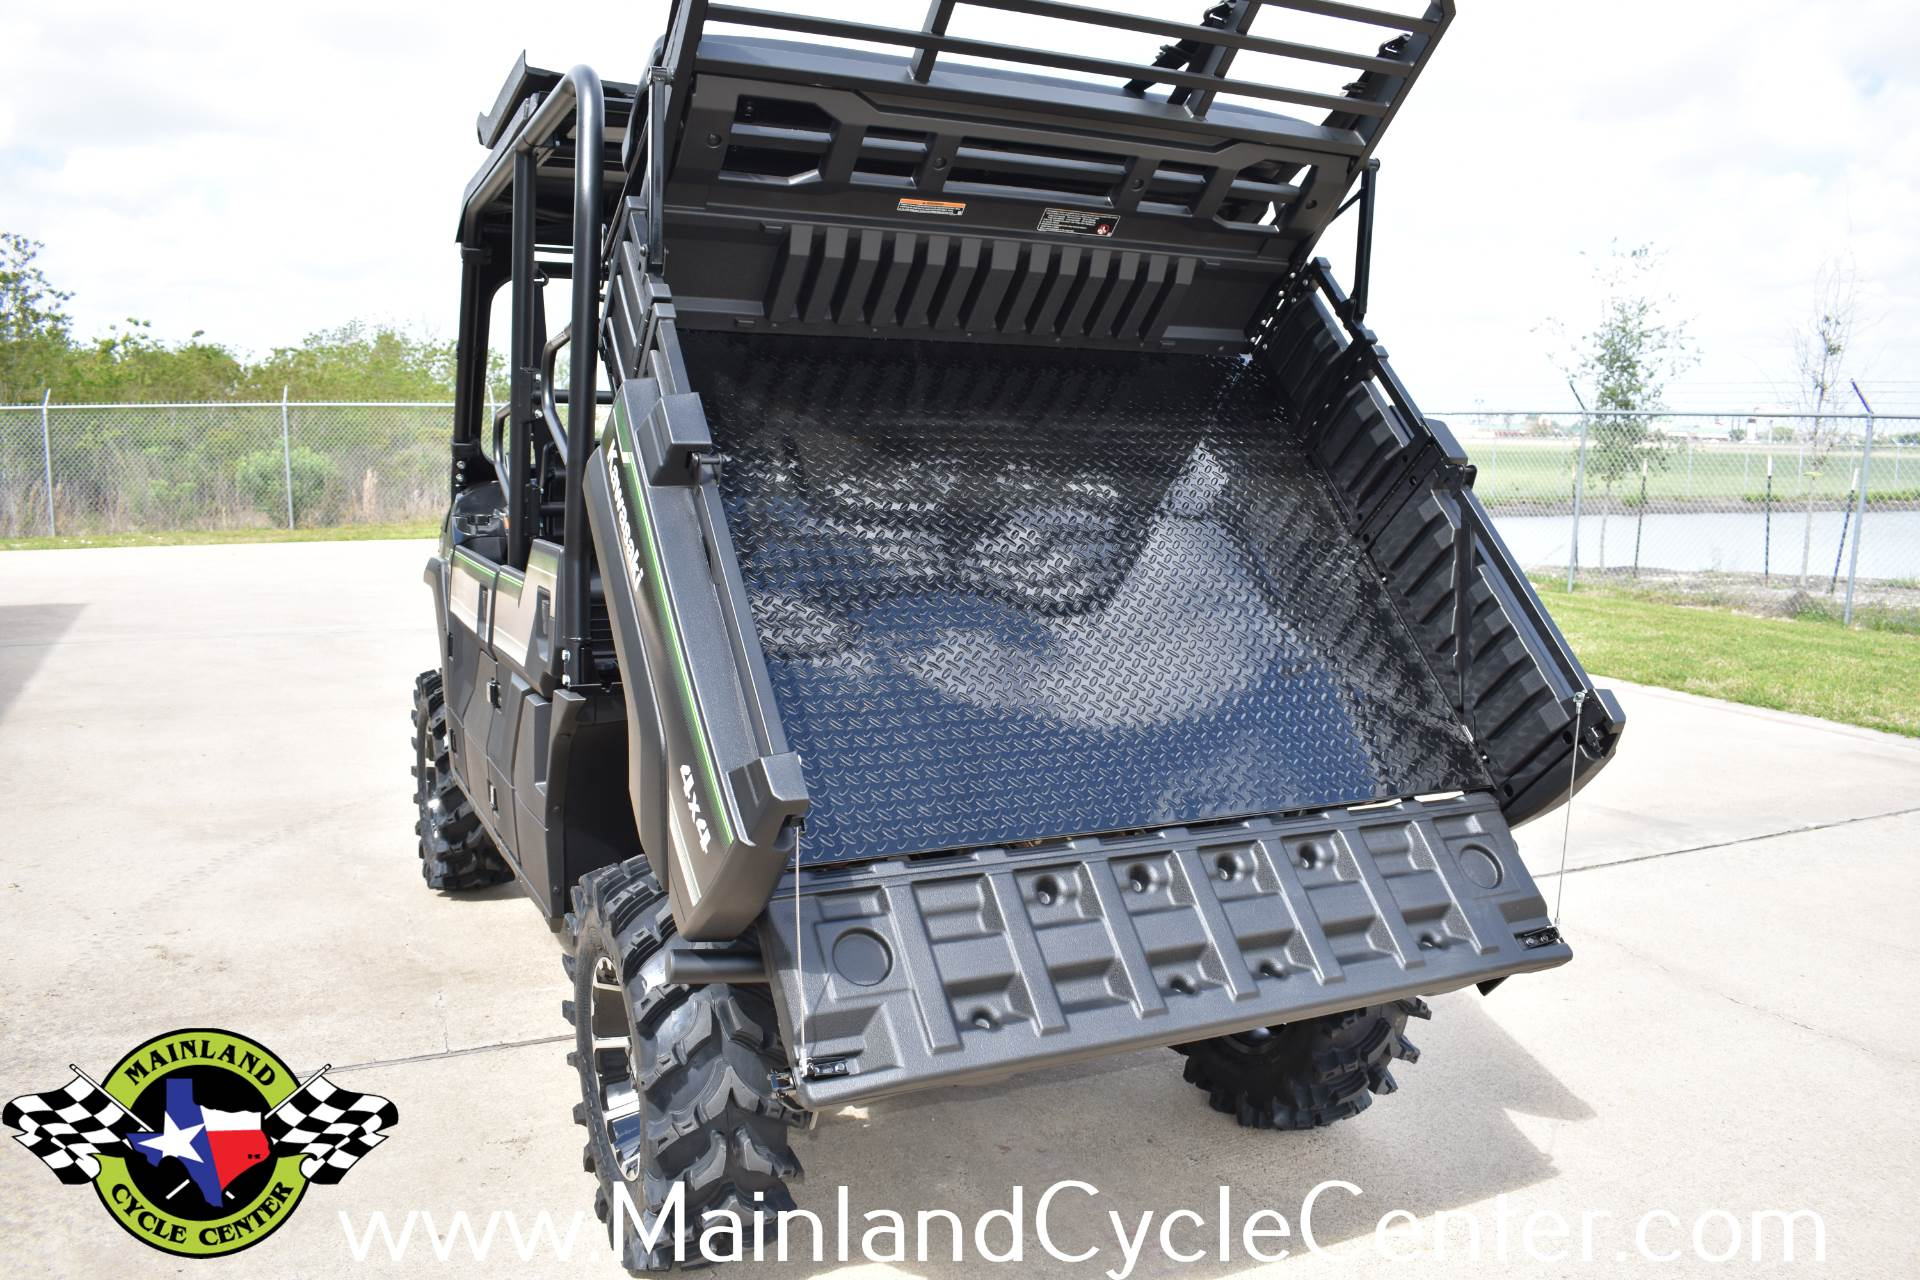 2018 Kawasaki Mule PRO-FXT EPS LE in La Marque, Texas - Photo 24